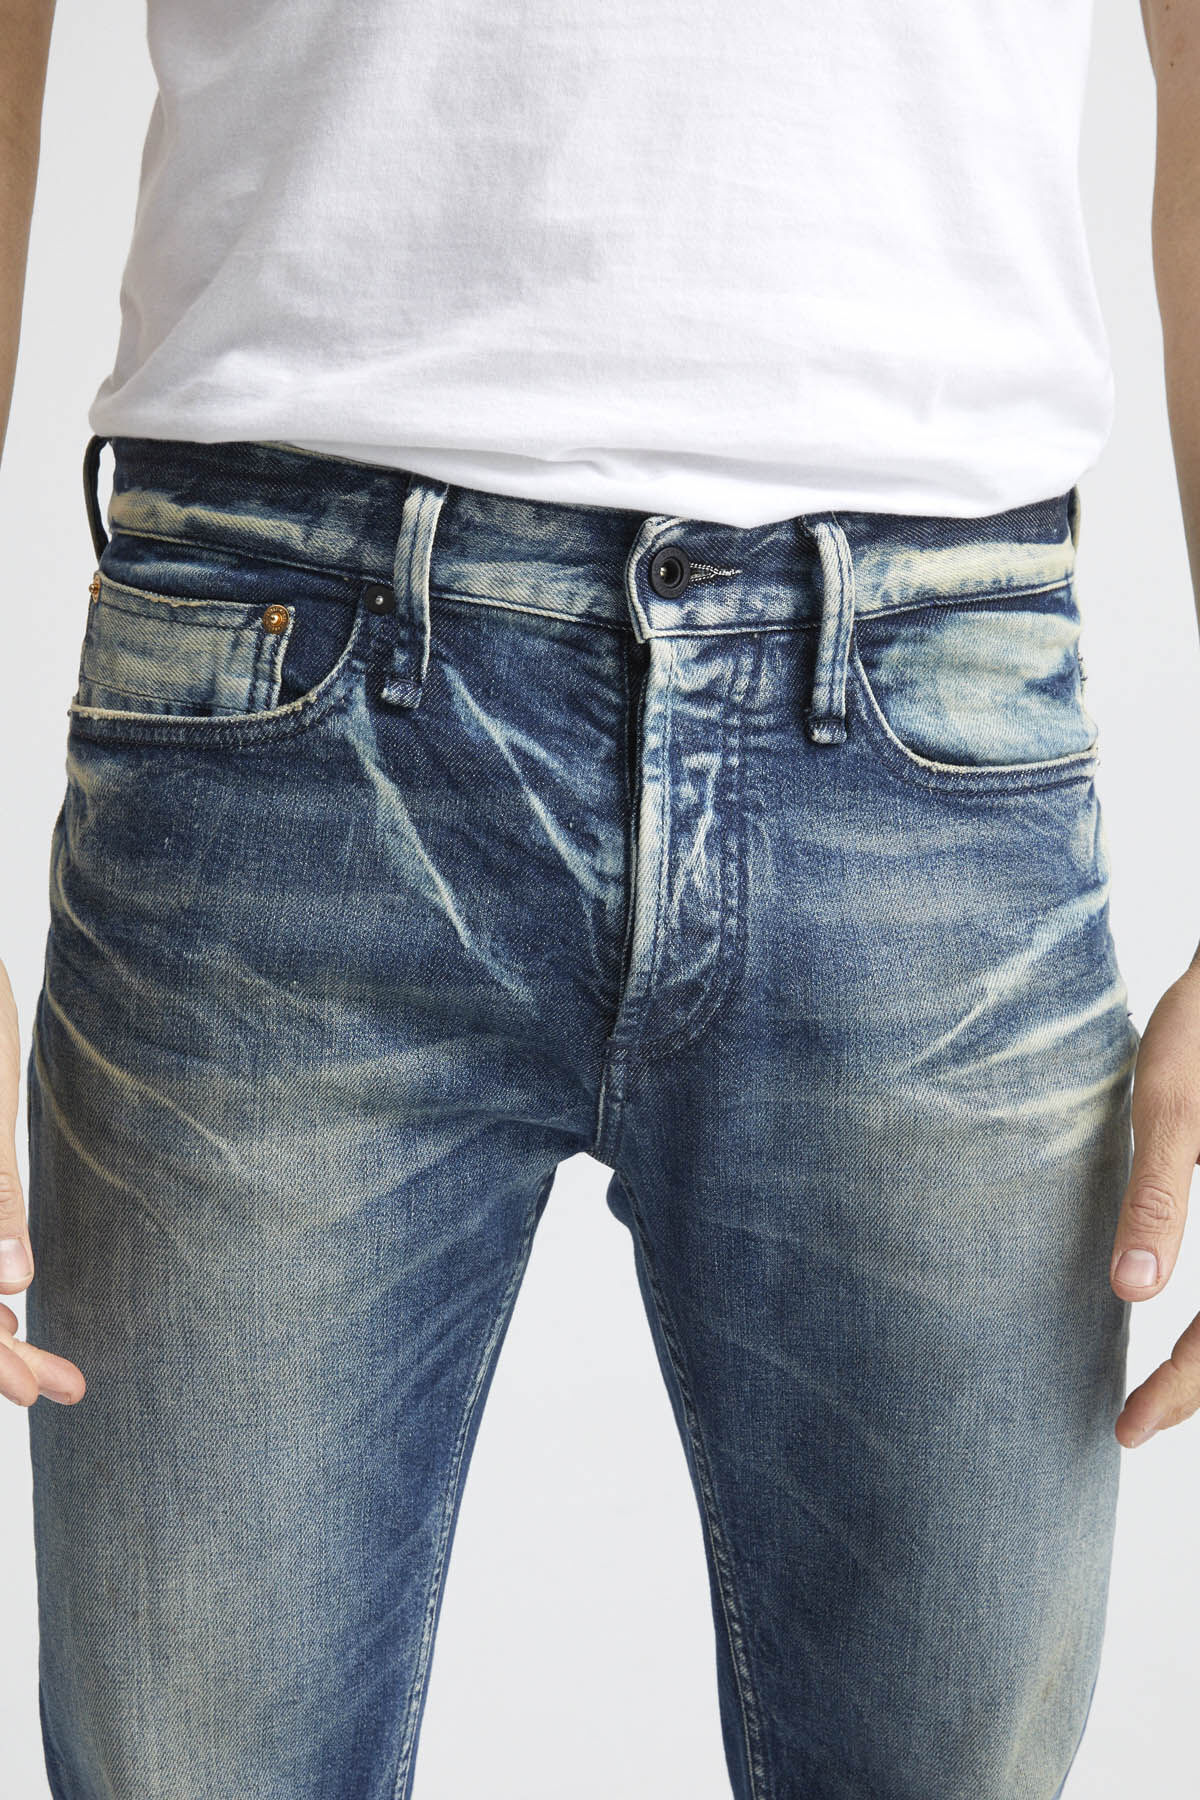 RAZOR Signature Selvedge Denim - Slim Fit